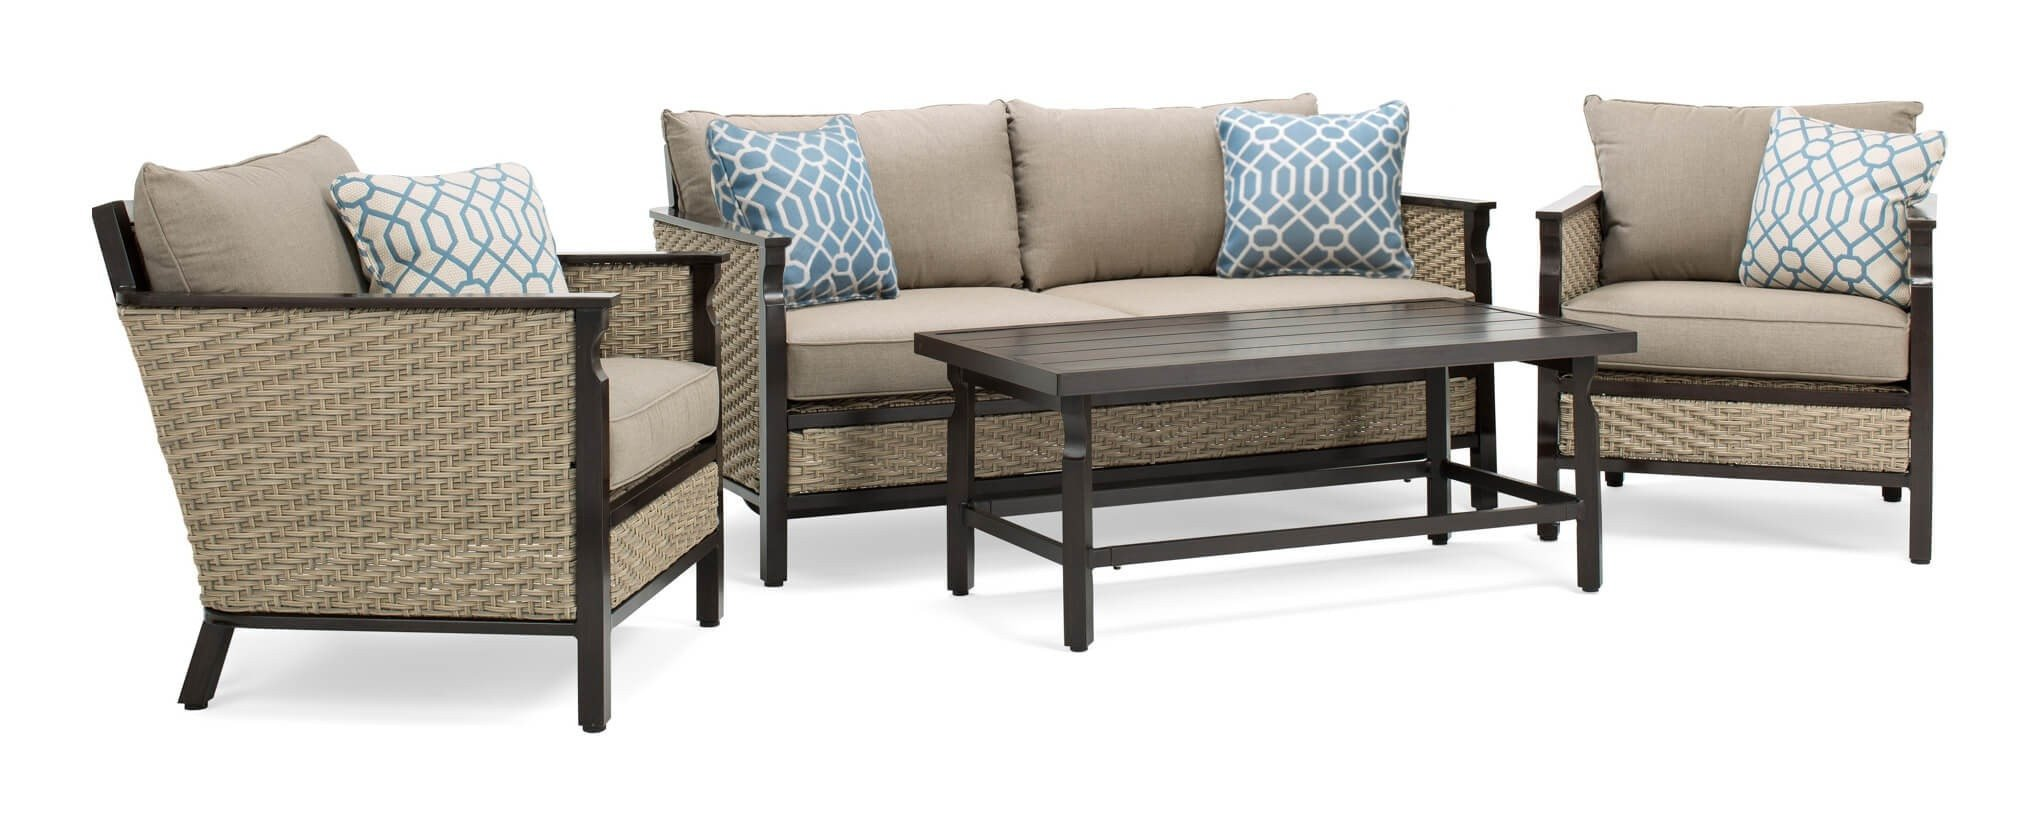 Colton Pc Patio Furniture Set Neutral Grey Wicker LaZBoy Outdoor - Colton coffee table